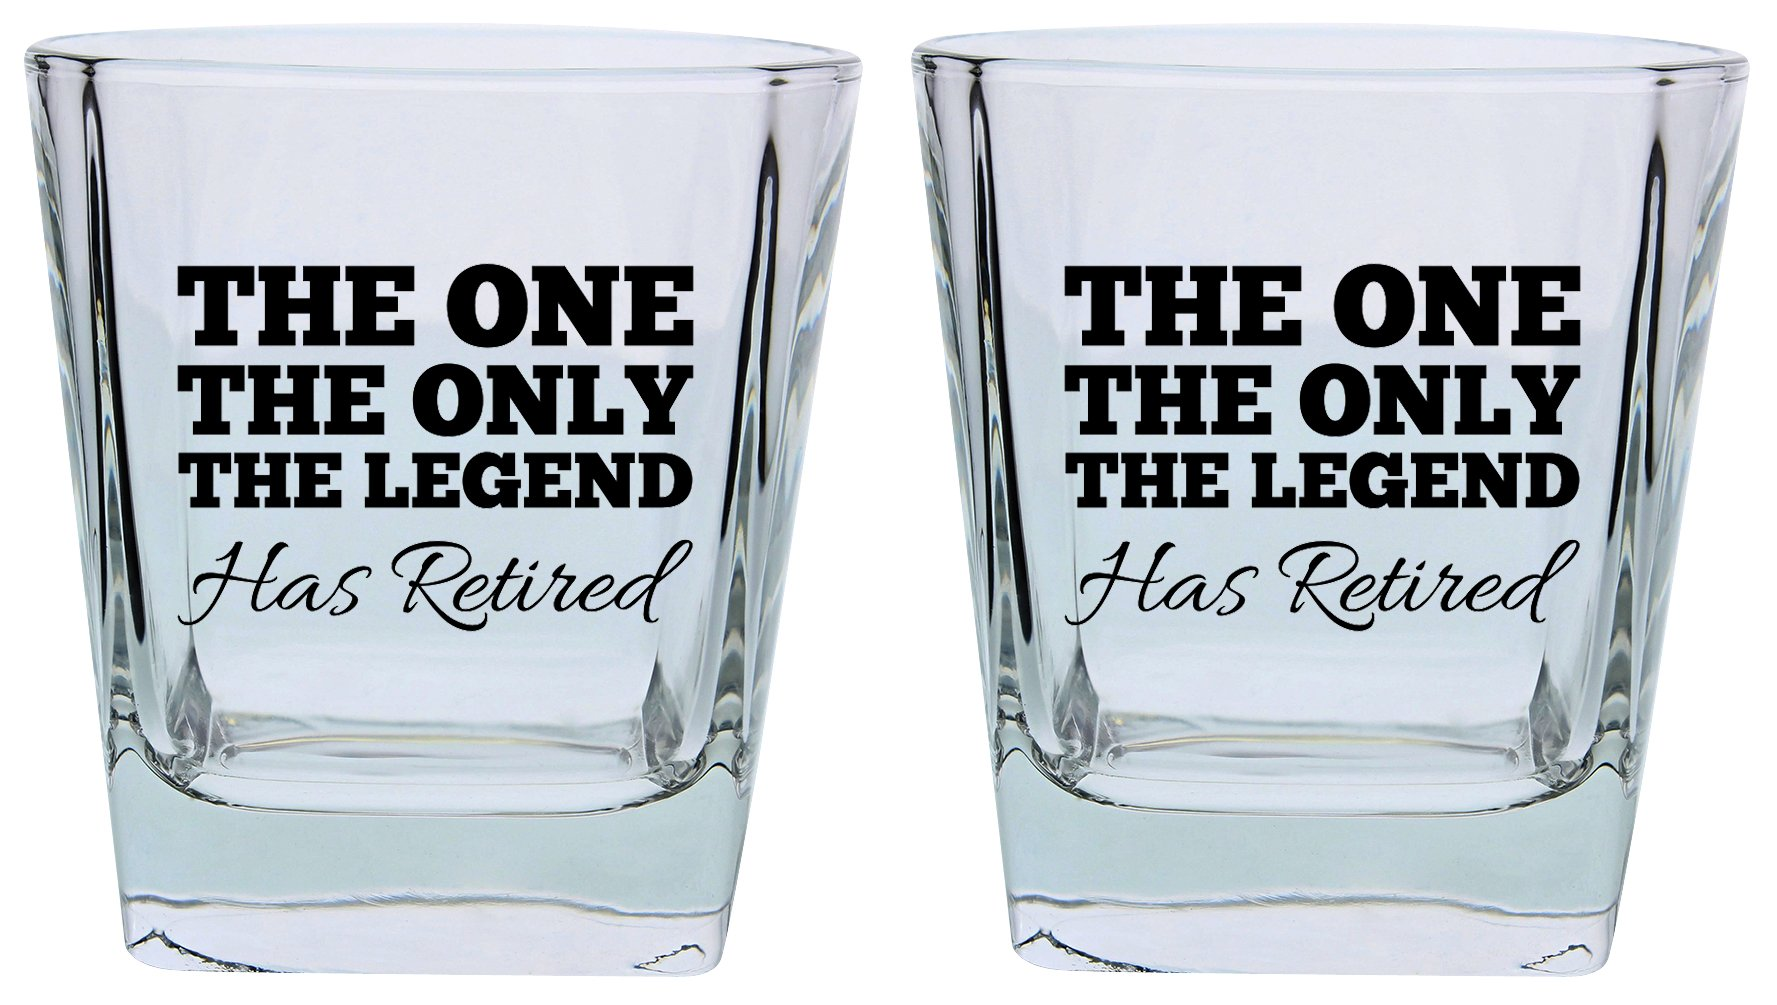 Retirement Gifts for Women or Men the One Only Legend Has Retired Funny Retirement Gift Set Square Lowball Glasses 2-Pack Square Lowball Tumbler Set Black